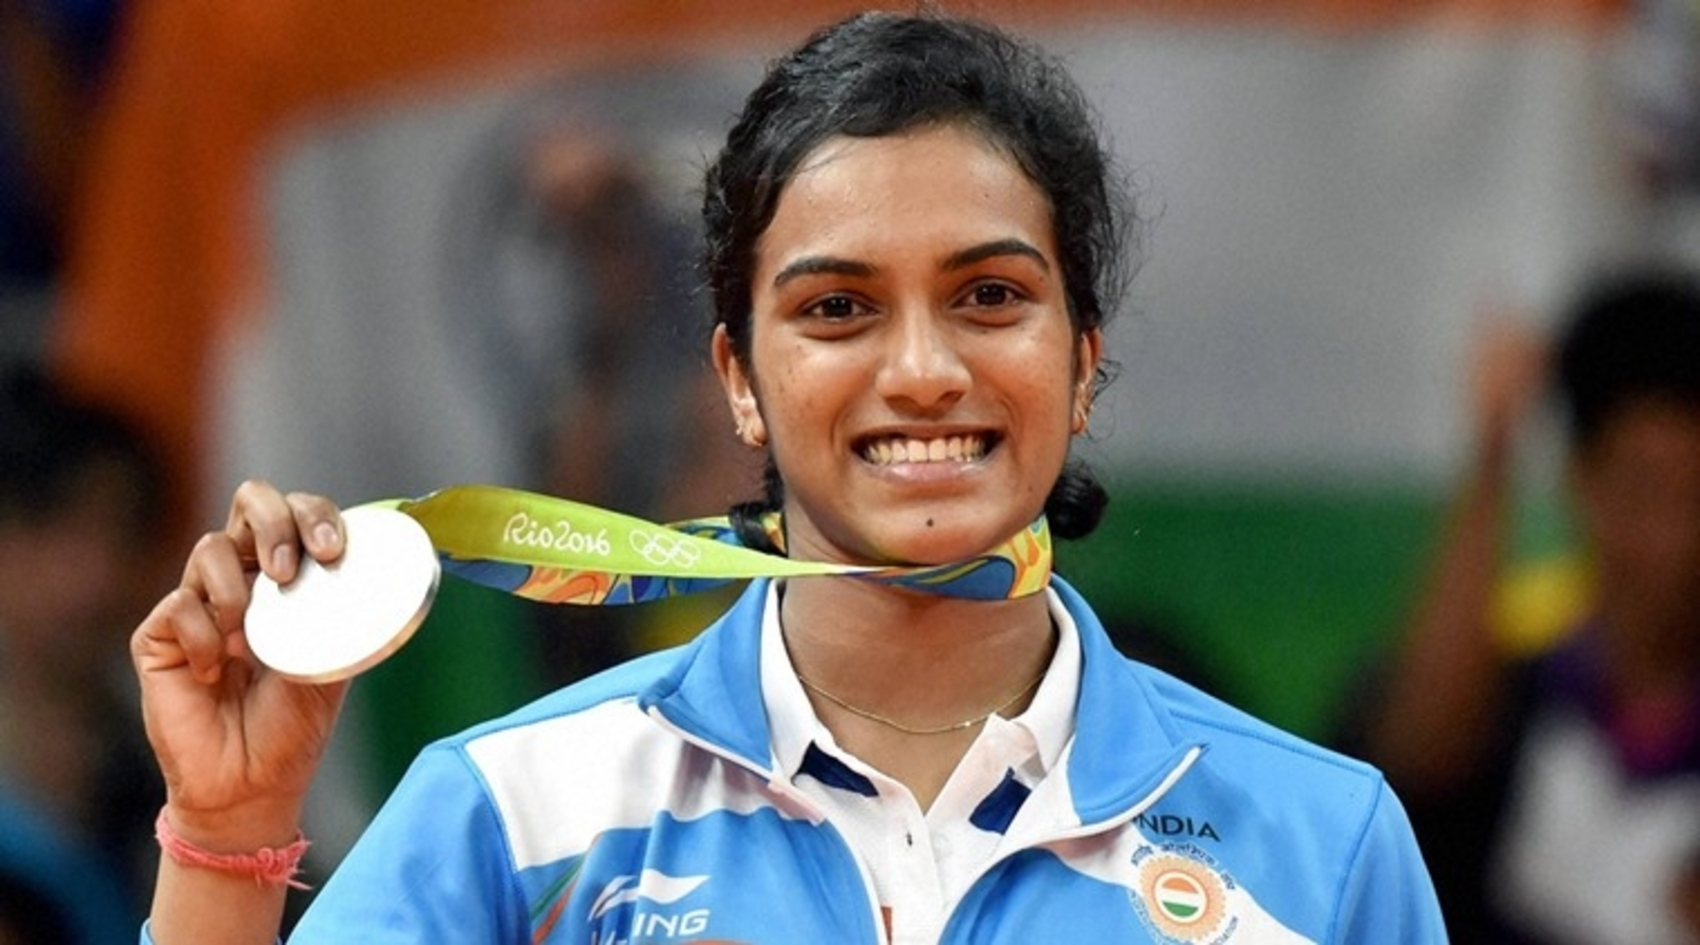 Photo of PV Sindhu: The Golden Girl with a Silver Medal